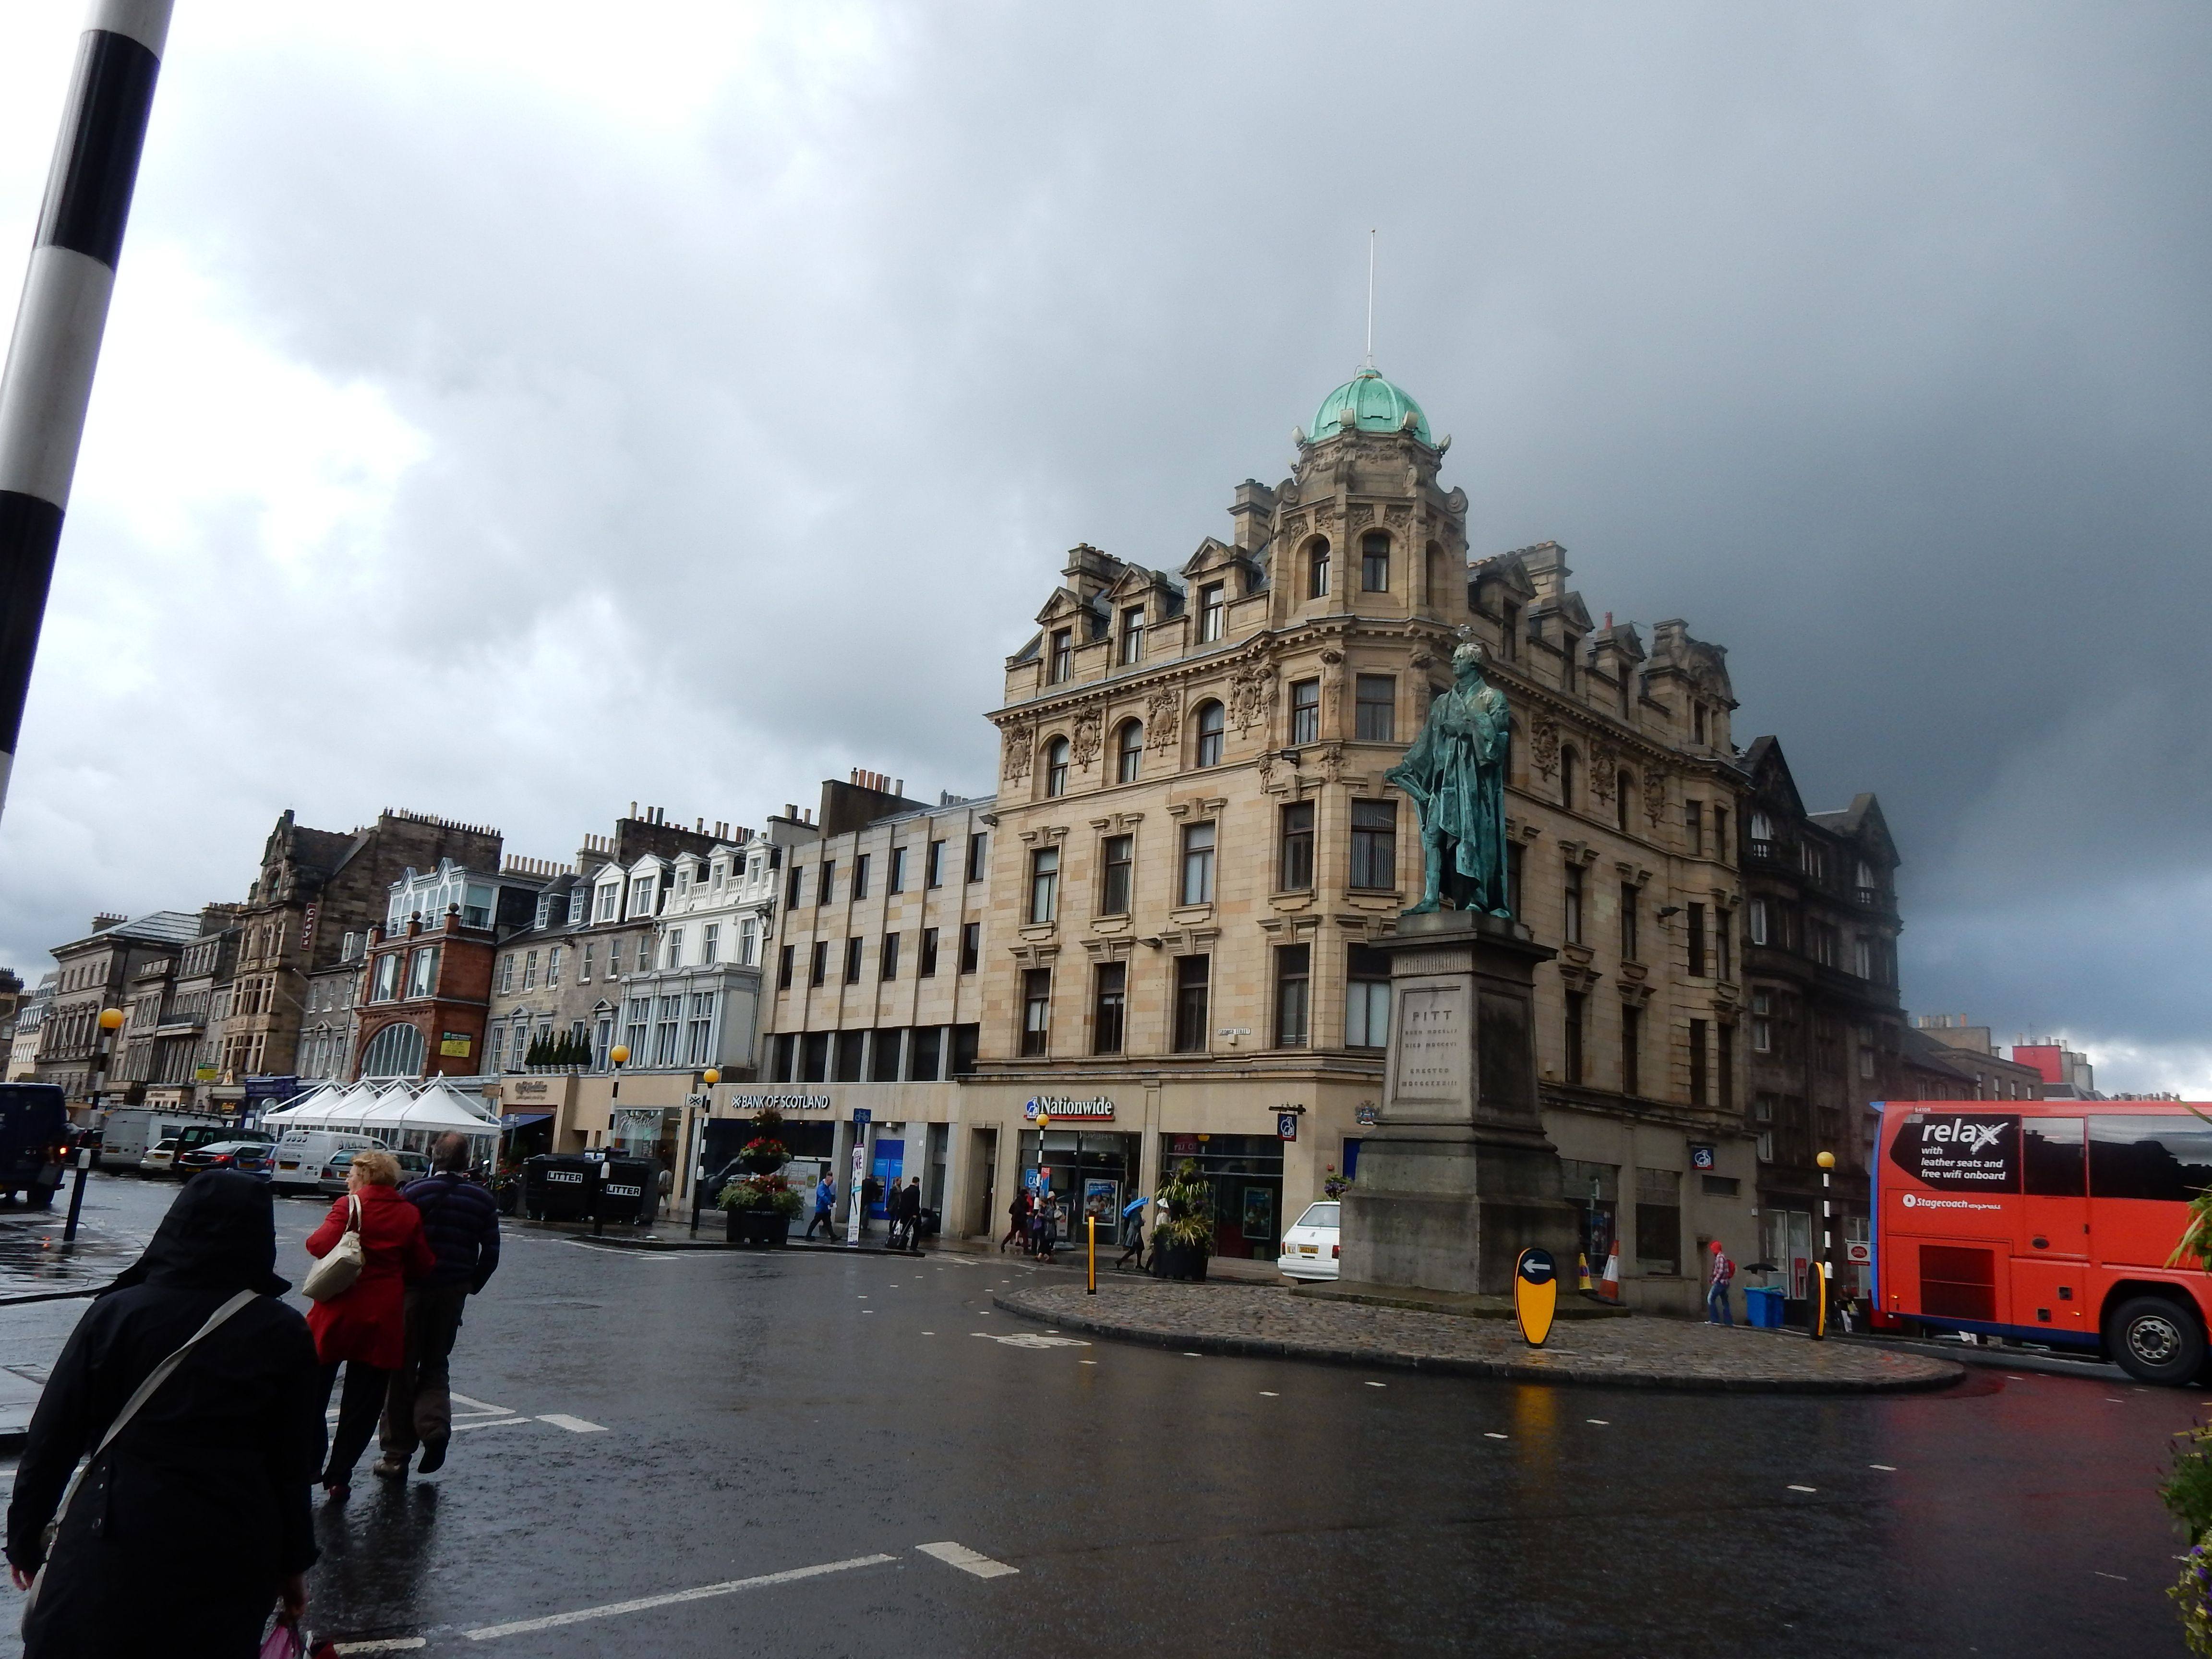 Scotland is well known for its beautiful architecture and